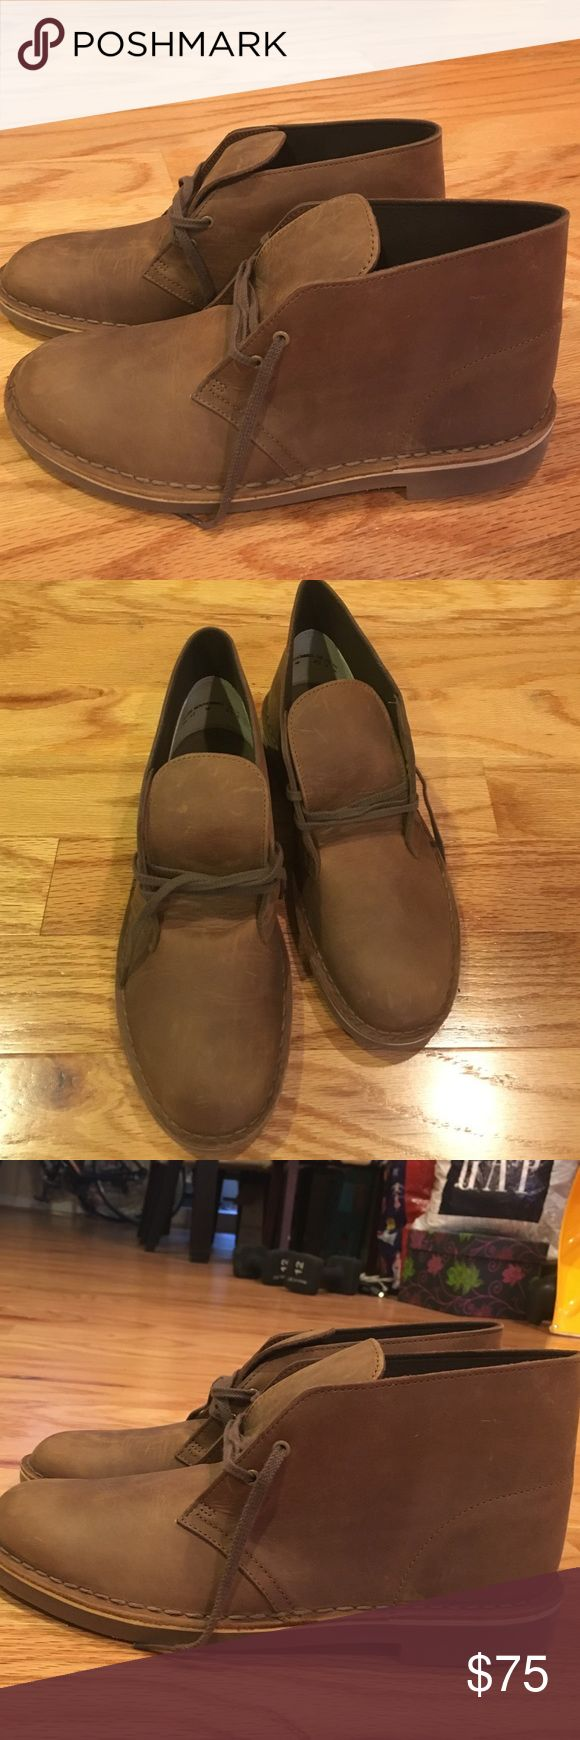 Brown UNWORN Clarks! Light brown men's Clarks. Never worn! They were a gift for my husband and were the wrong size. We couldn't return them! Great find! Clarks Shoes Mules & Clogs